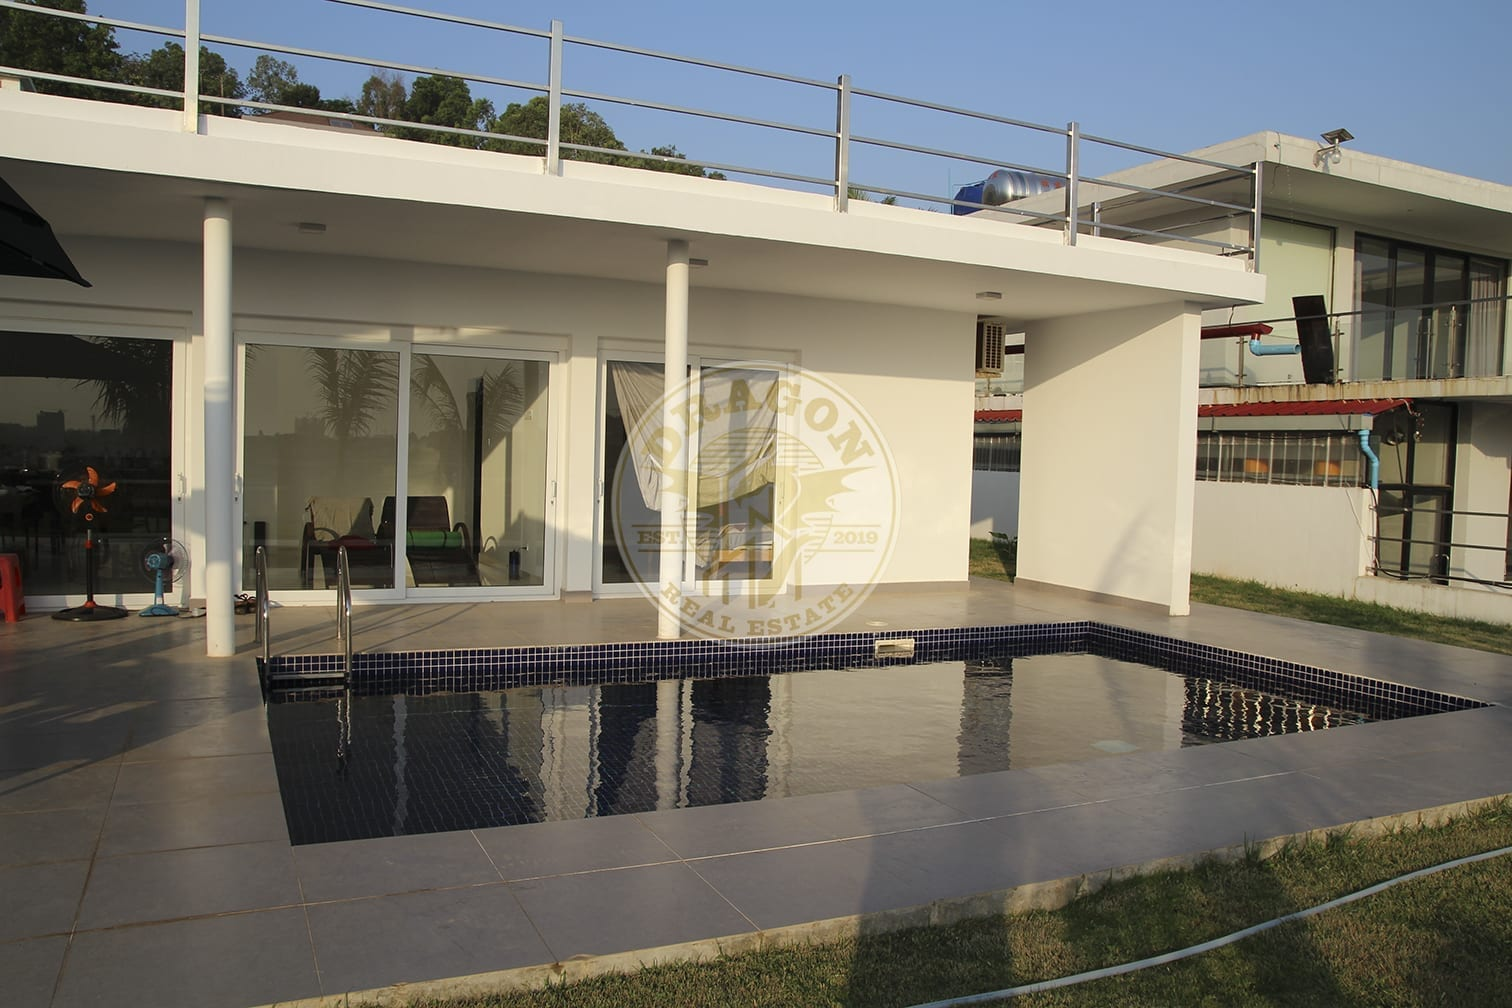 Villa 200m2 for Rent. Real Estate in Sihanoukville